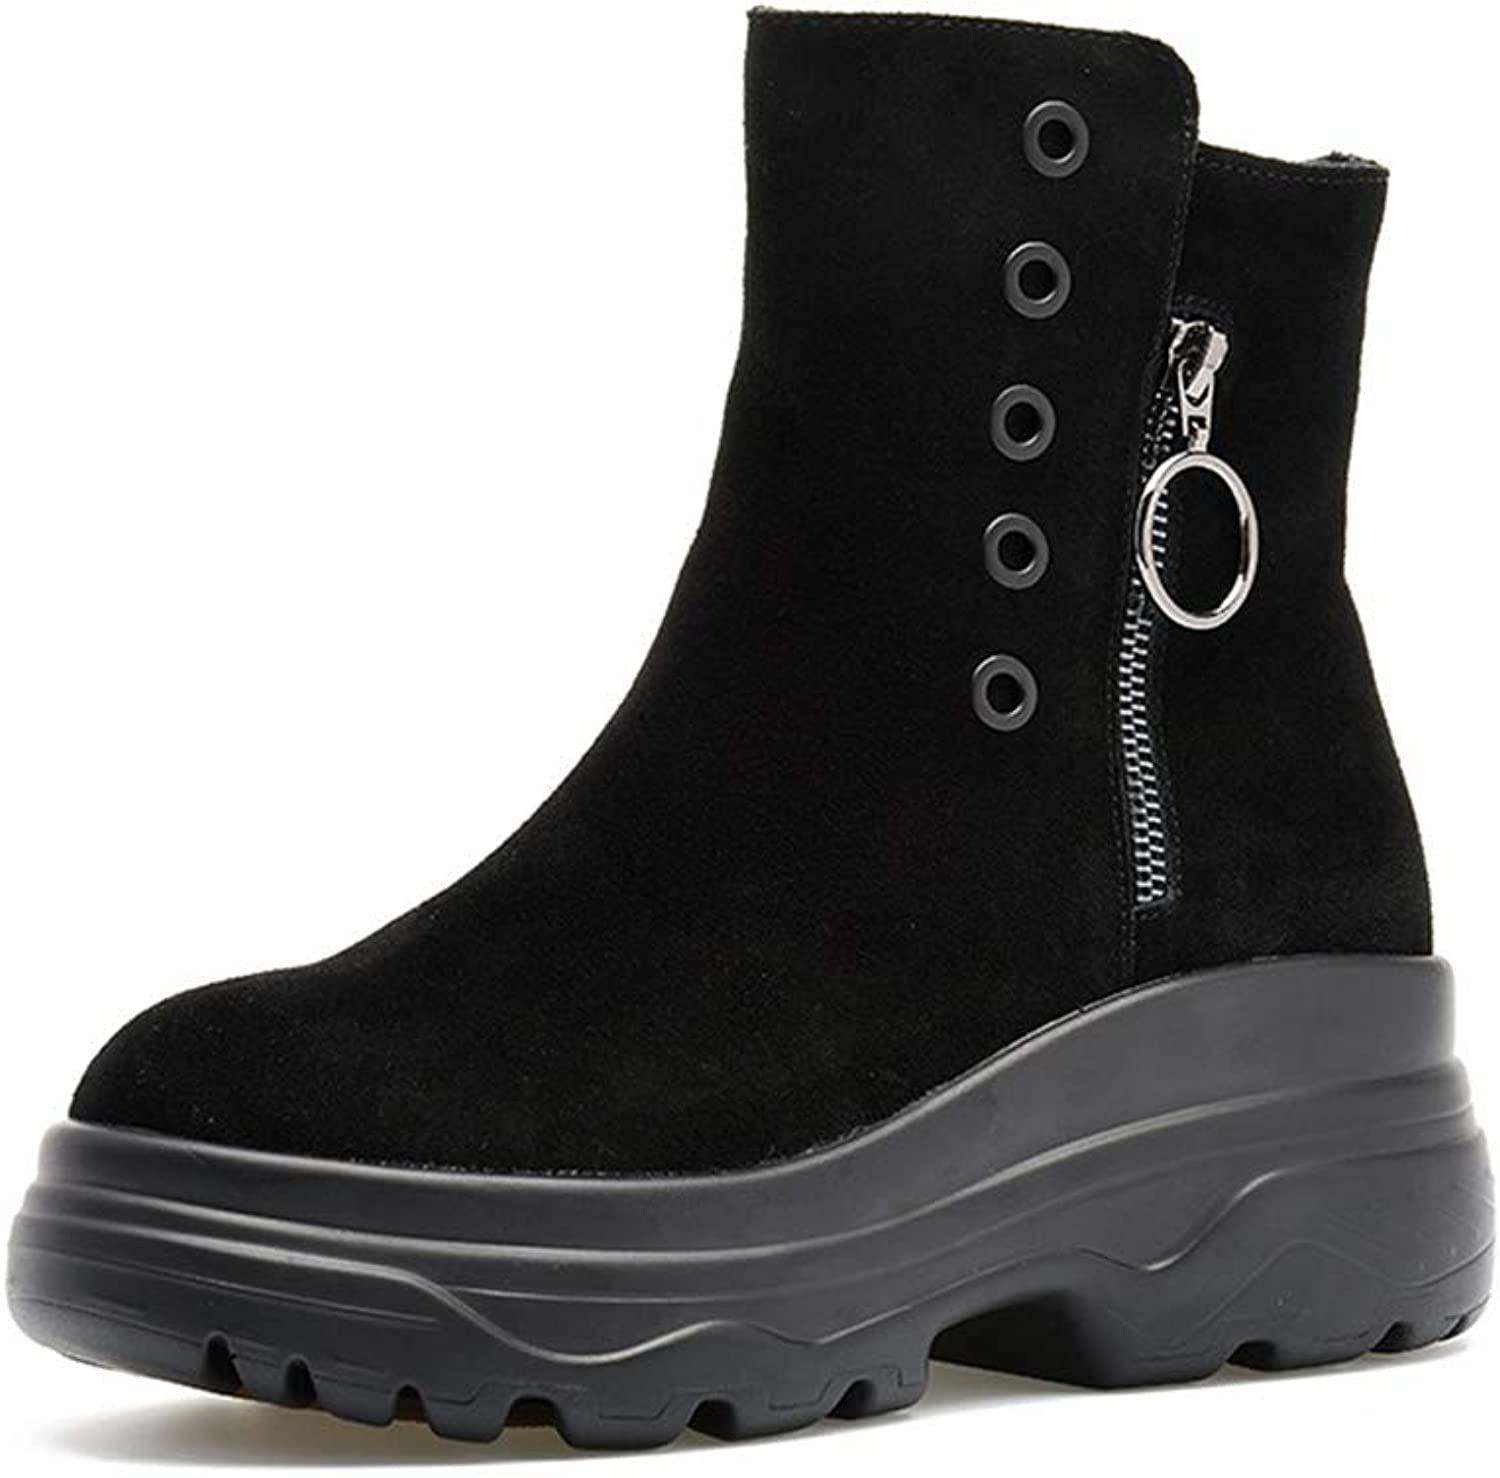 Women's shoes Leather Winter New Platform shoes High-top Casual shoes Round Head Outdoor Walking shoes Warm shoes Black (color   Black, Size   39)